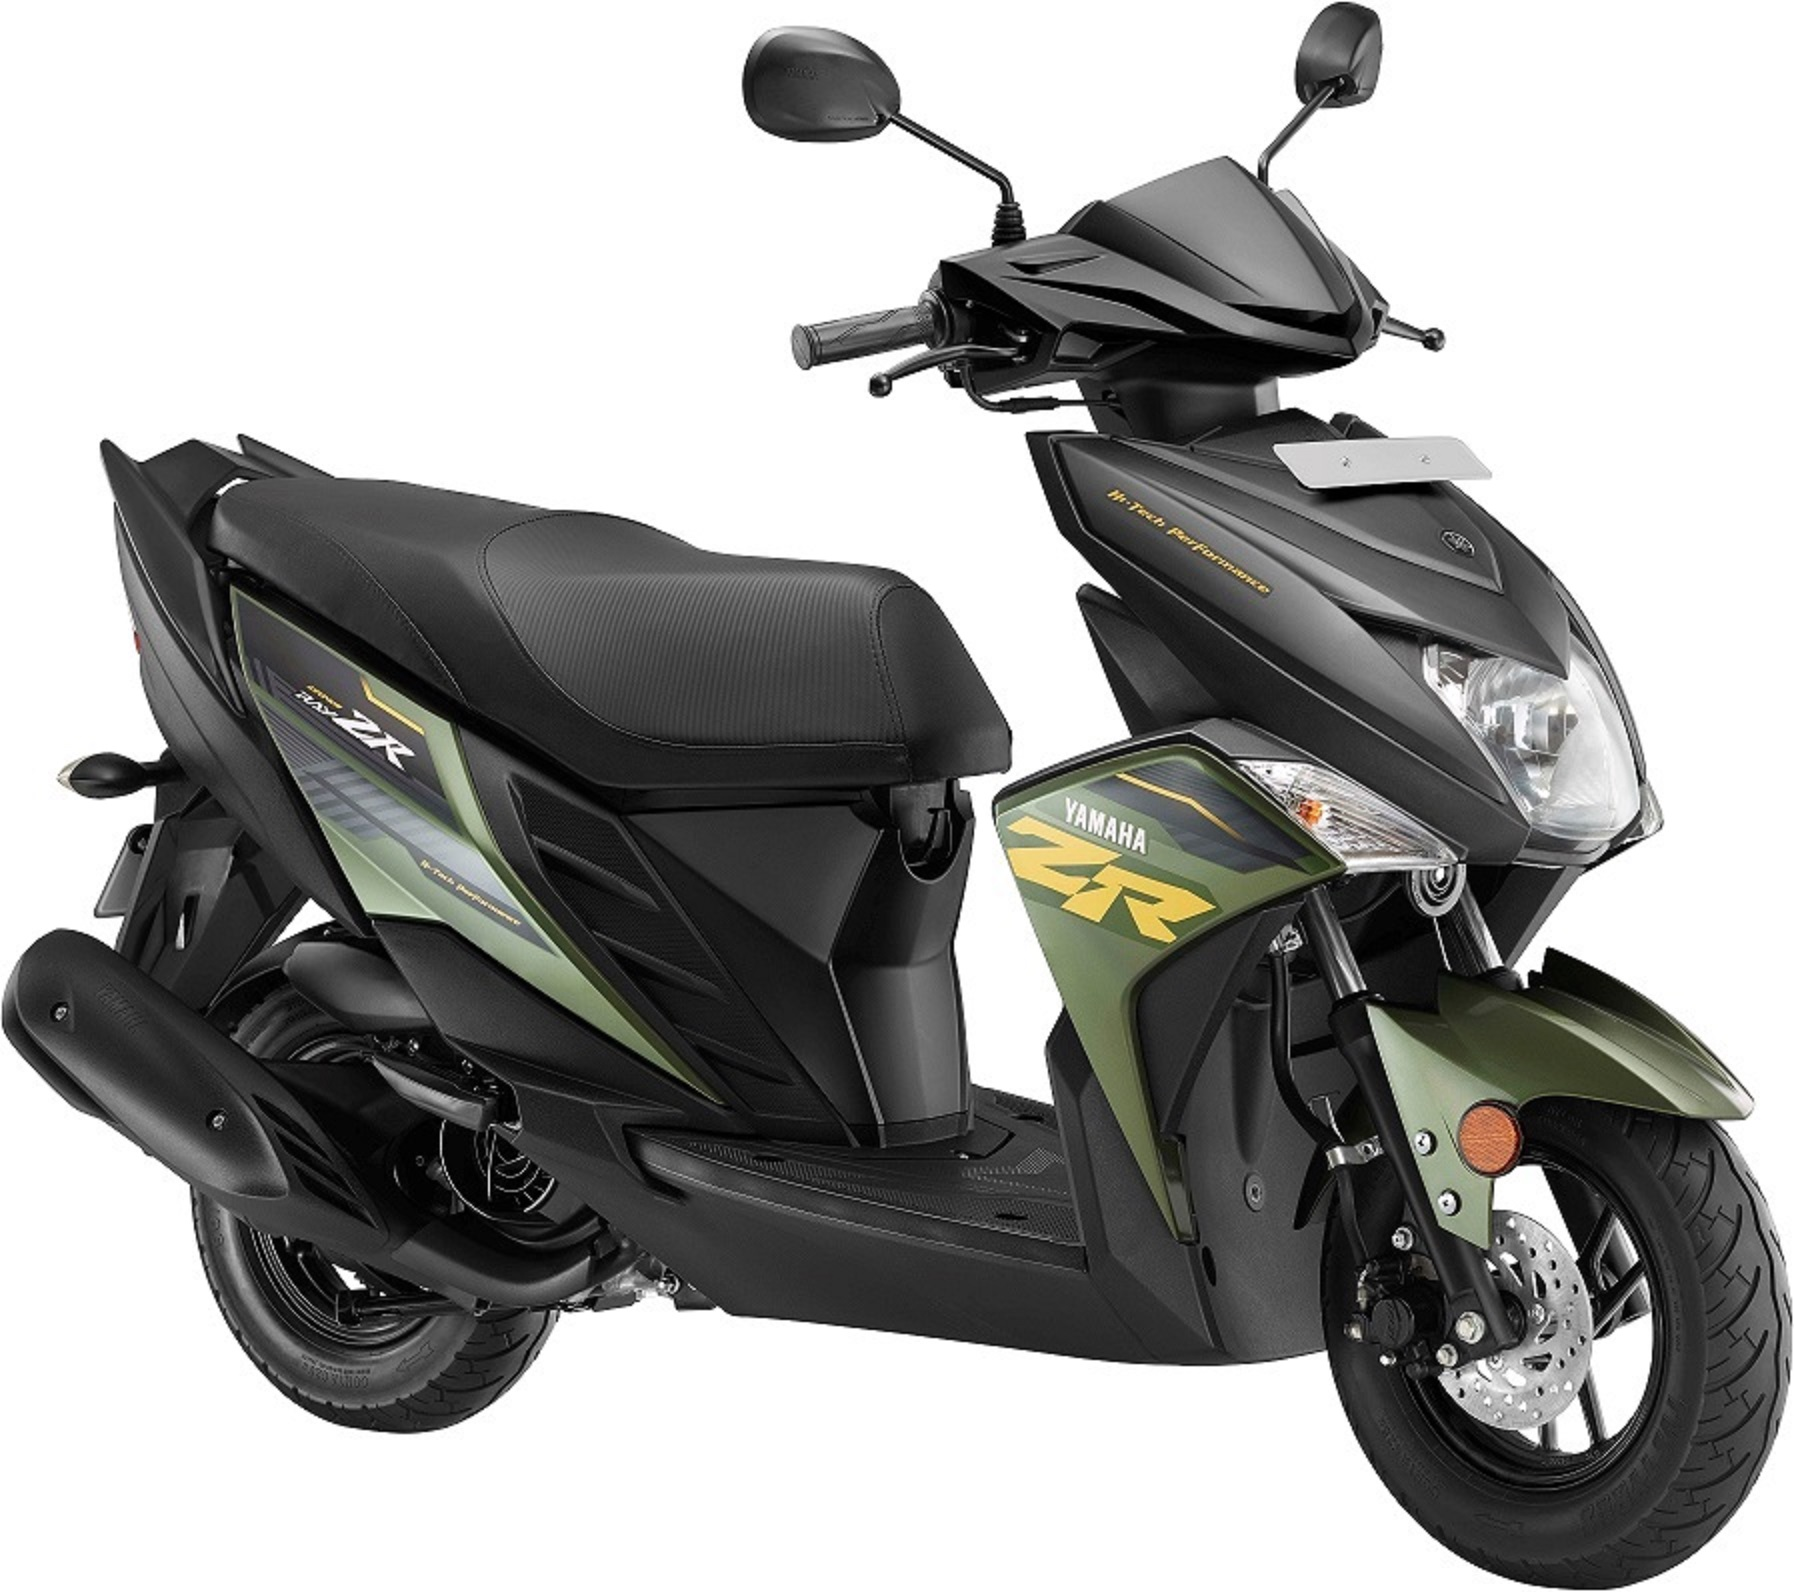 Yamaha Electric Motorcycle >> Yamaha Cygnus Ray-ZR now available in new colours | Shifting-Gears